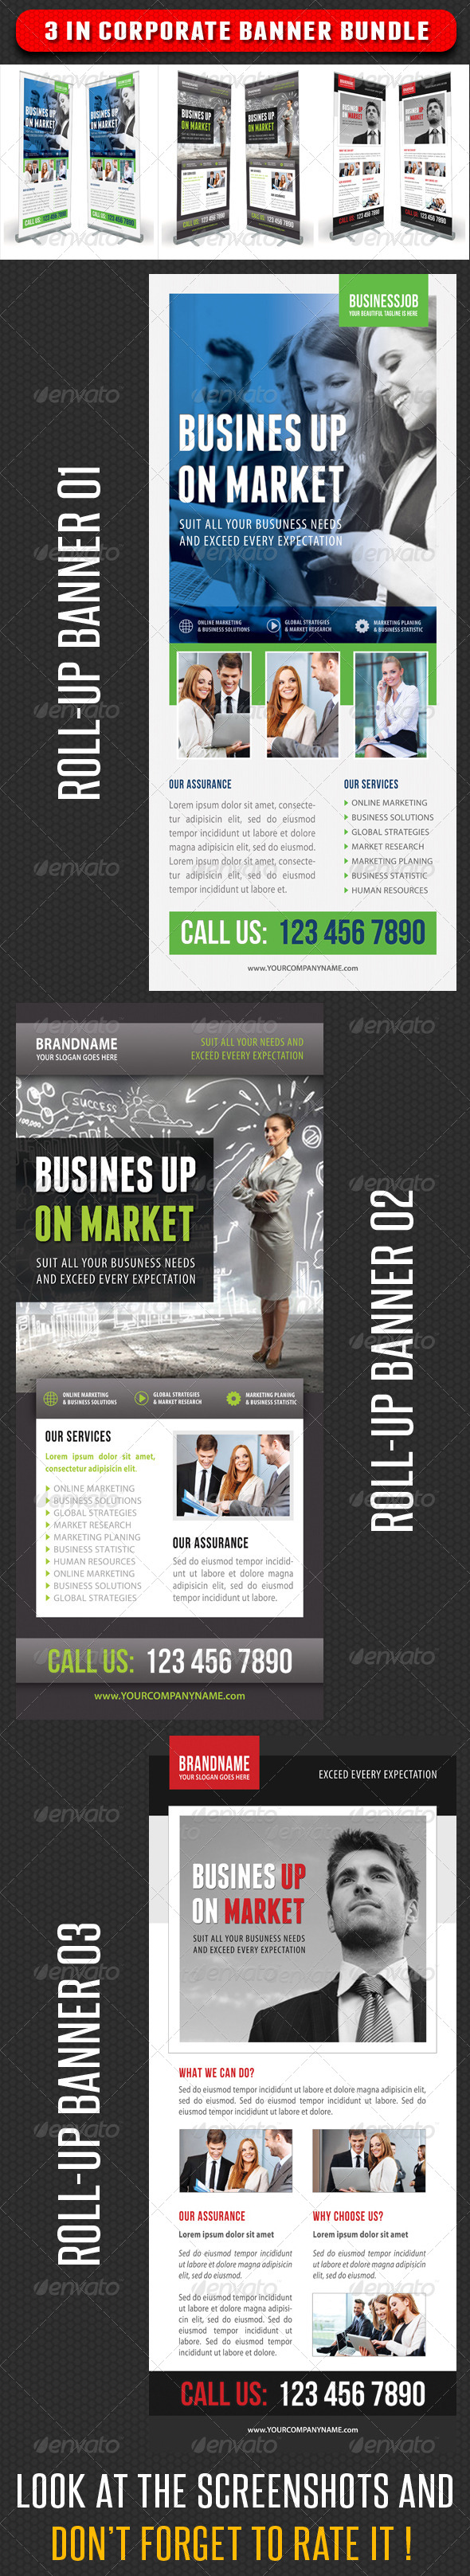 GraphicRiver 3 in 1 Corporate Rollup Banner Bundle 06 7347548